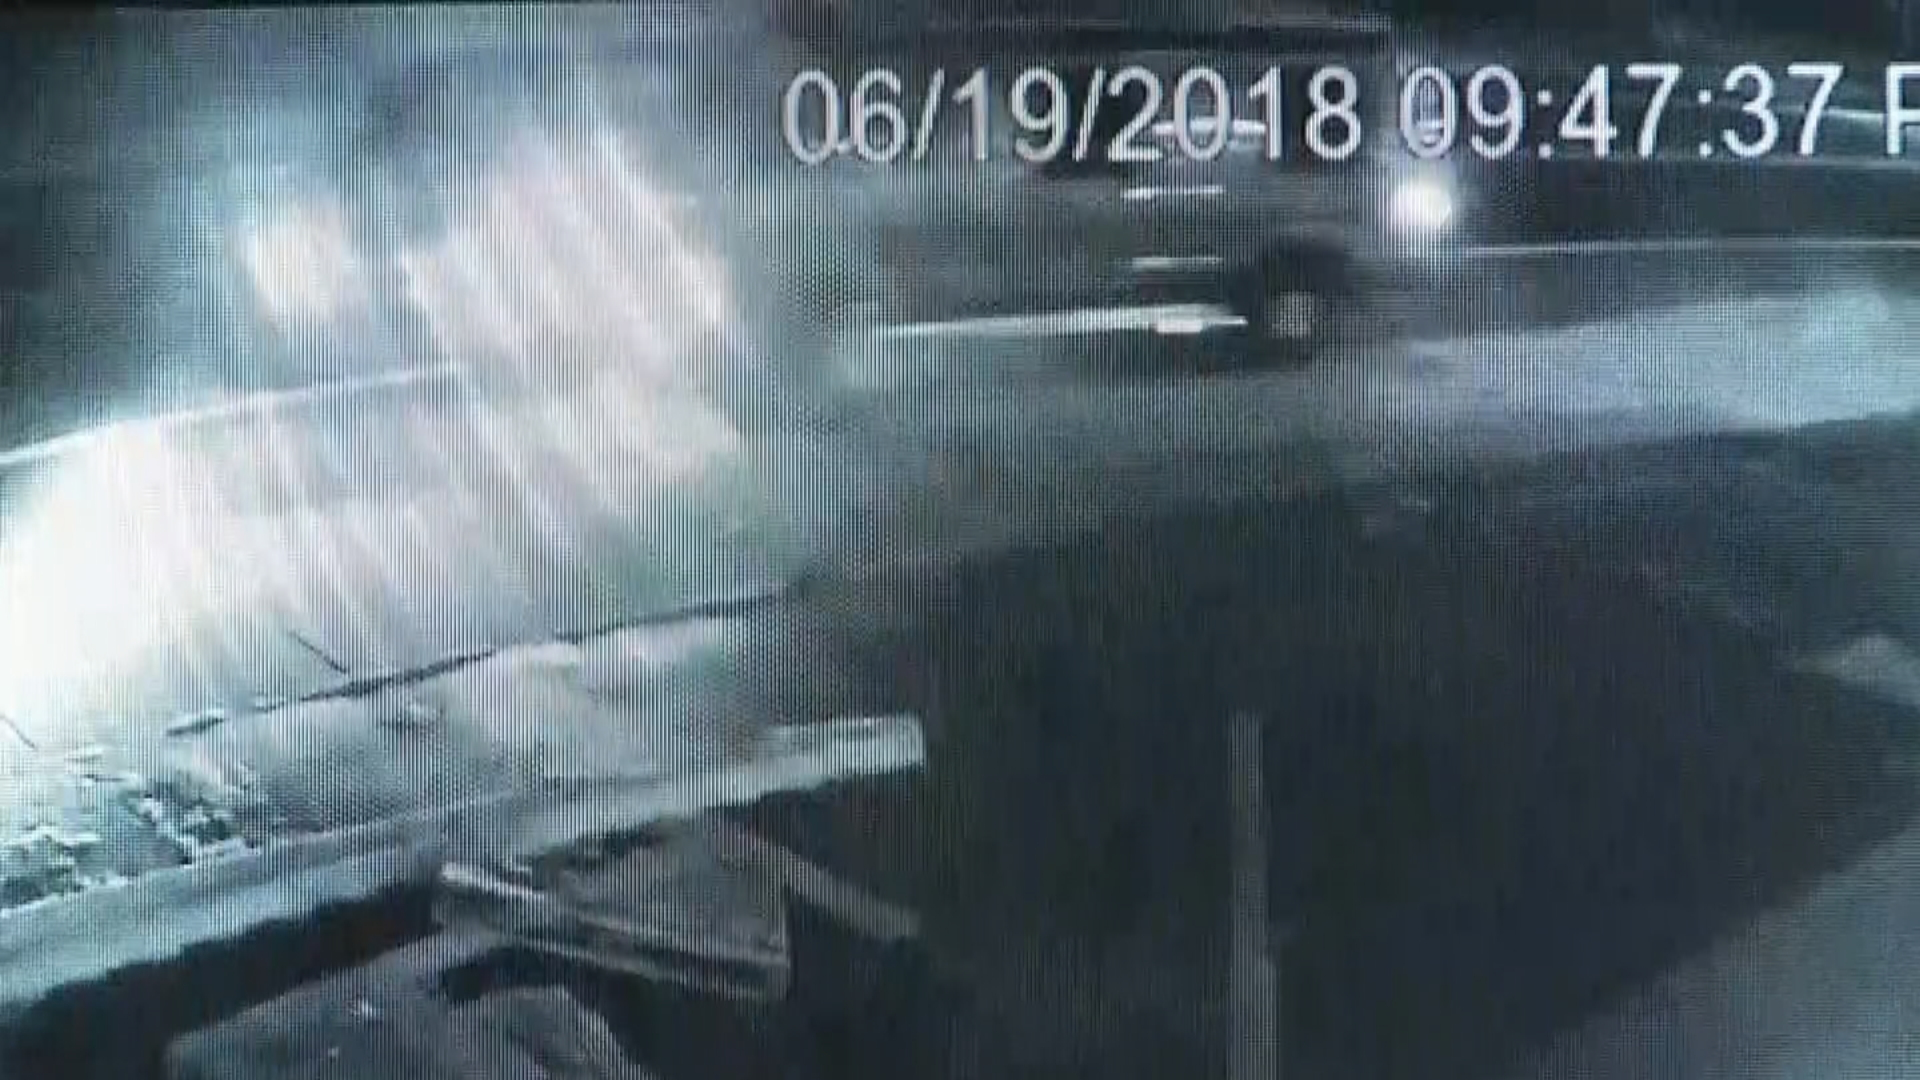 Exclusive video obtained by NBC 10 News shows a car slowing down as a van approaches it head-on. The van crashes into the car, pushing it off the road and into a driveway.